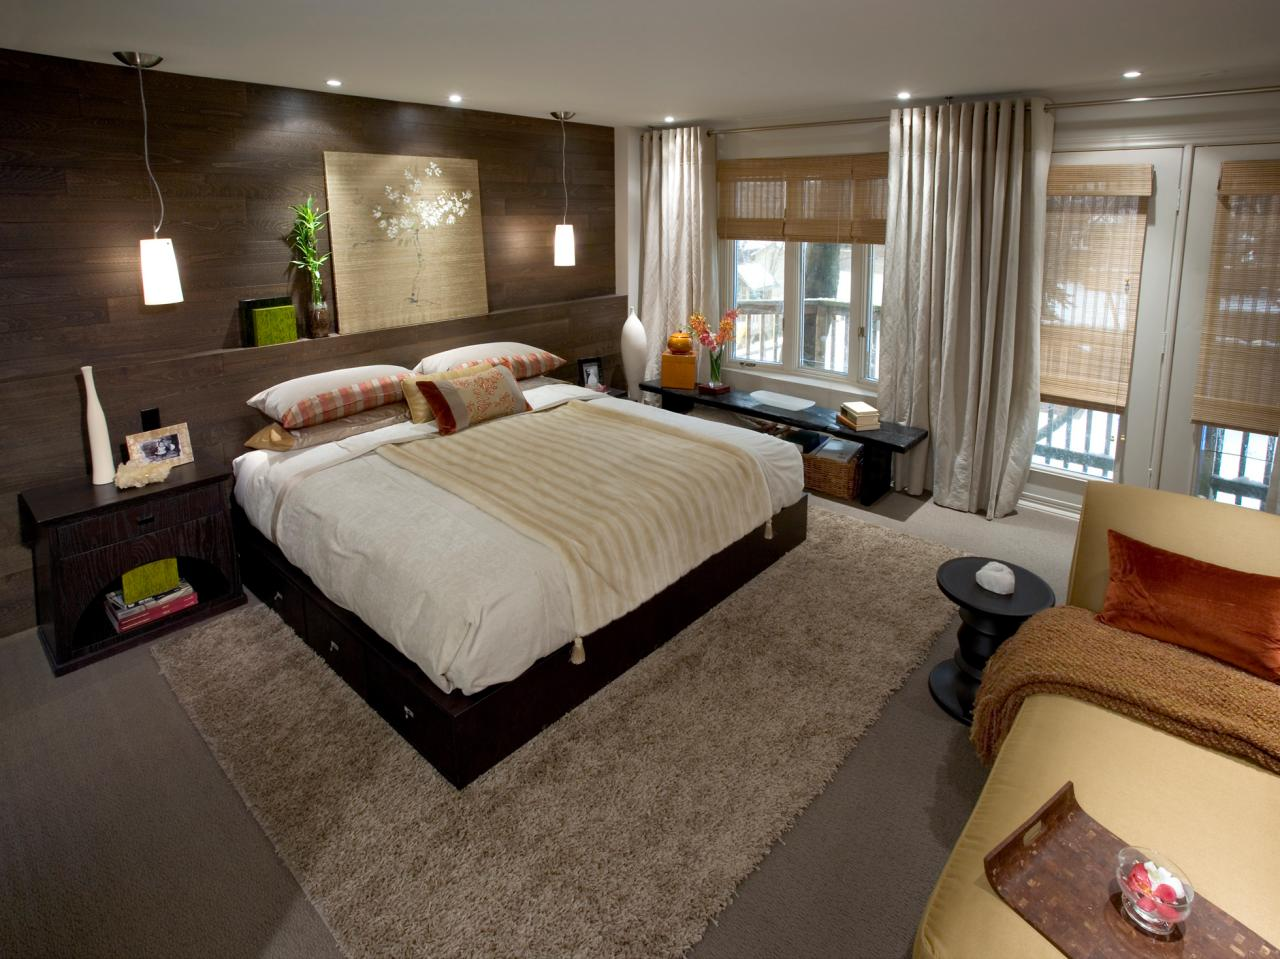 10 divine master bedrooms by candice olson bedrooms for Decoracion de habitacion matrimonial